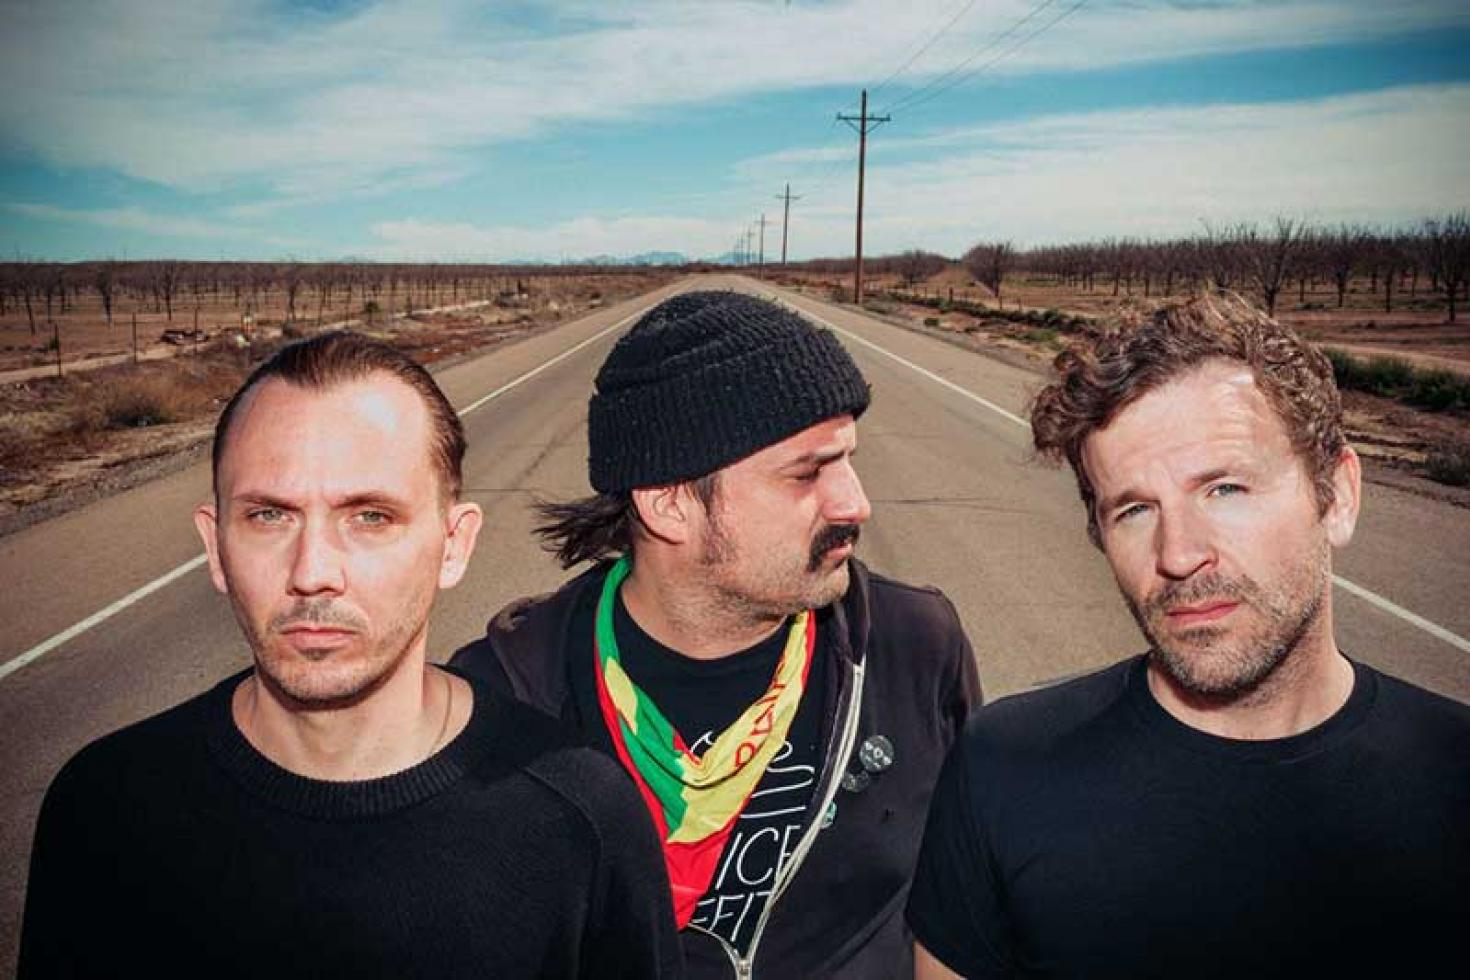 The Lawrence Arms release new track 'Last Last Words'